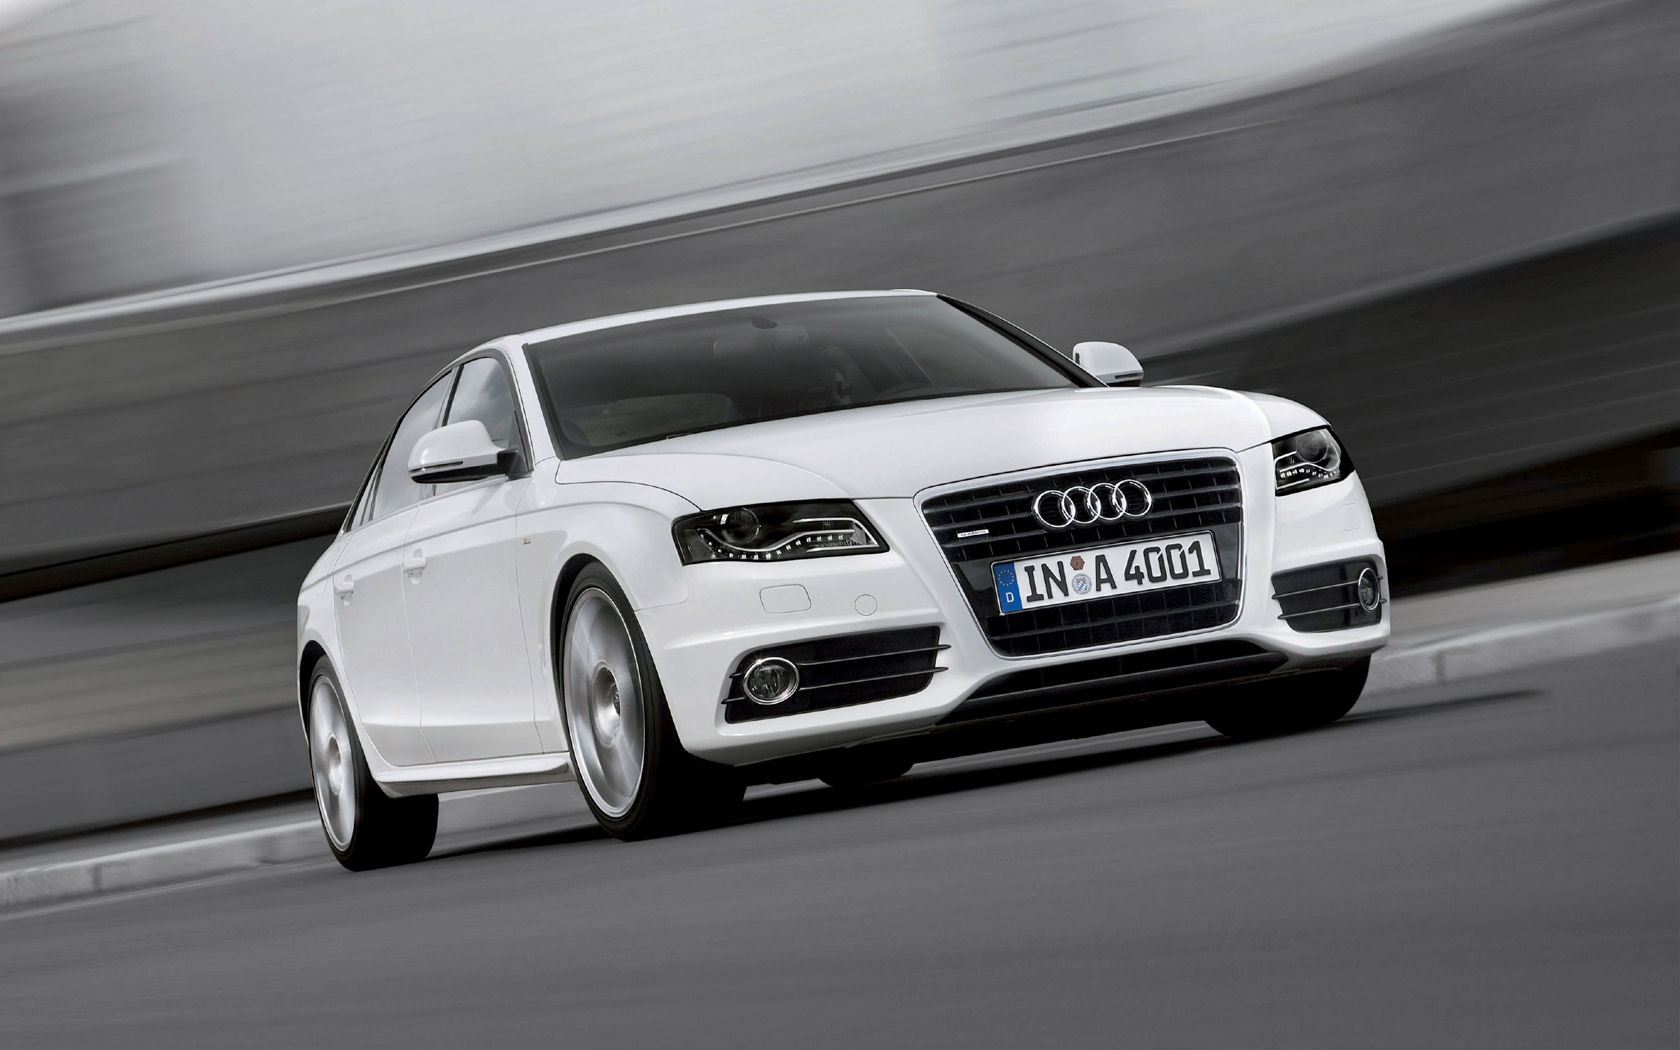 Audi Audi A4 Audi A4 Desktop Wallpapers Widescreen Wallpaper 1680x1050